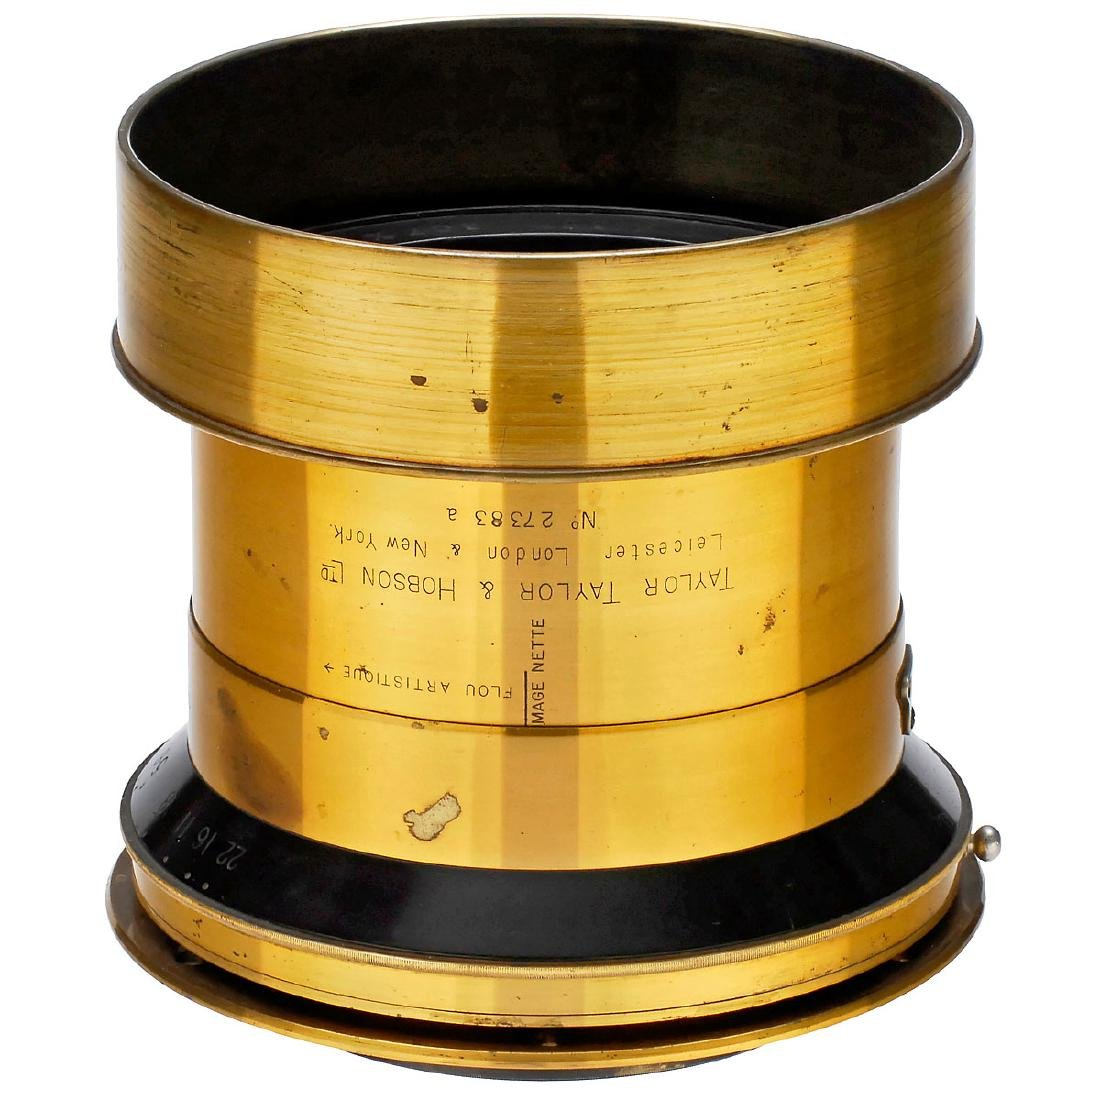 Cooke Portrait Lens 3,5/307 mm, c. 1900